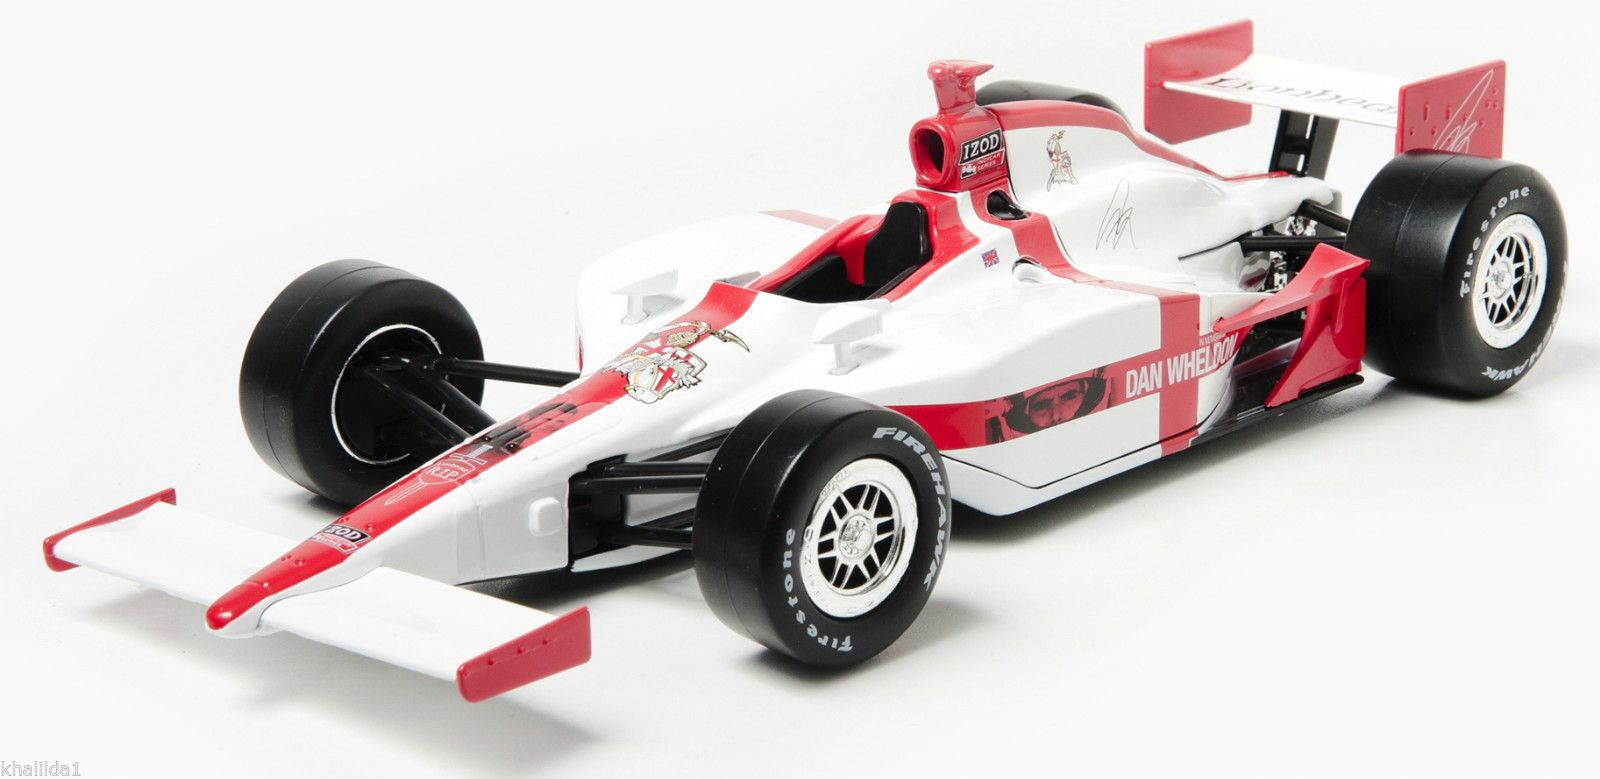 greenlight diecast 1/18 indy cars | Greenlight Indy Pictures ...